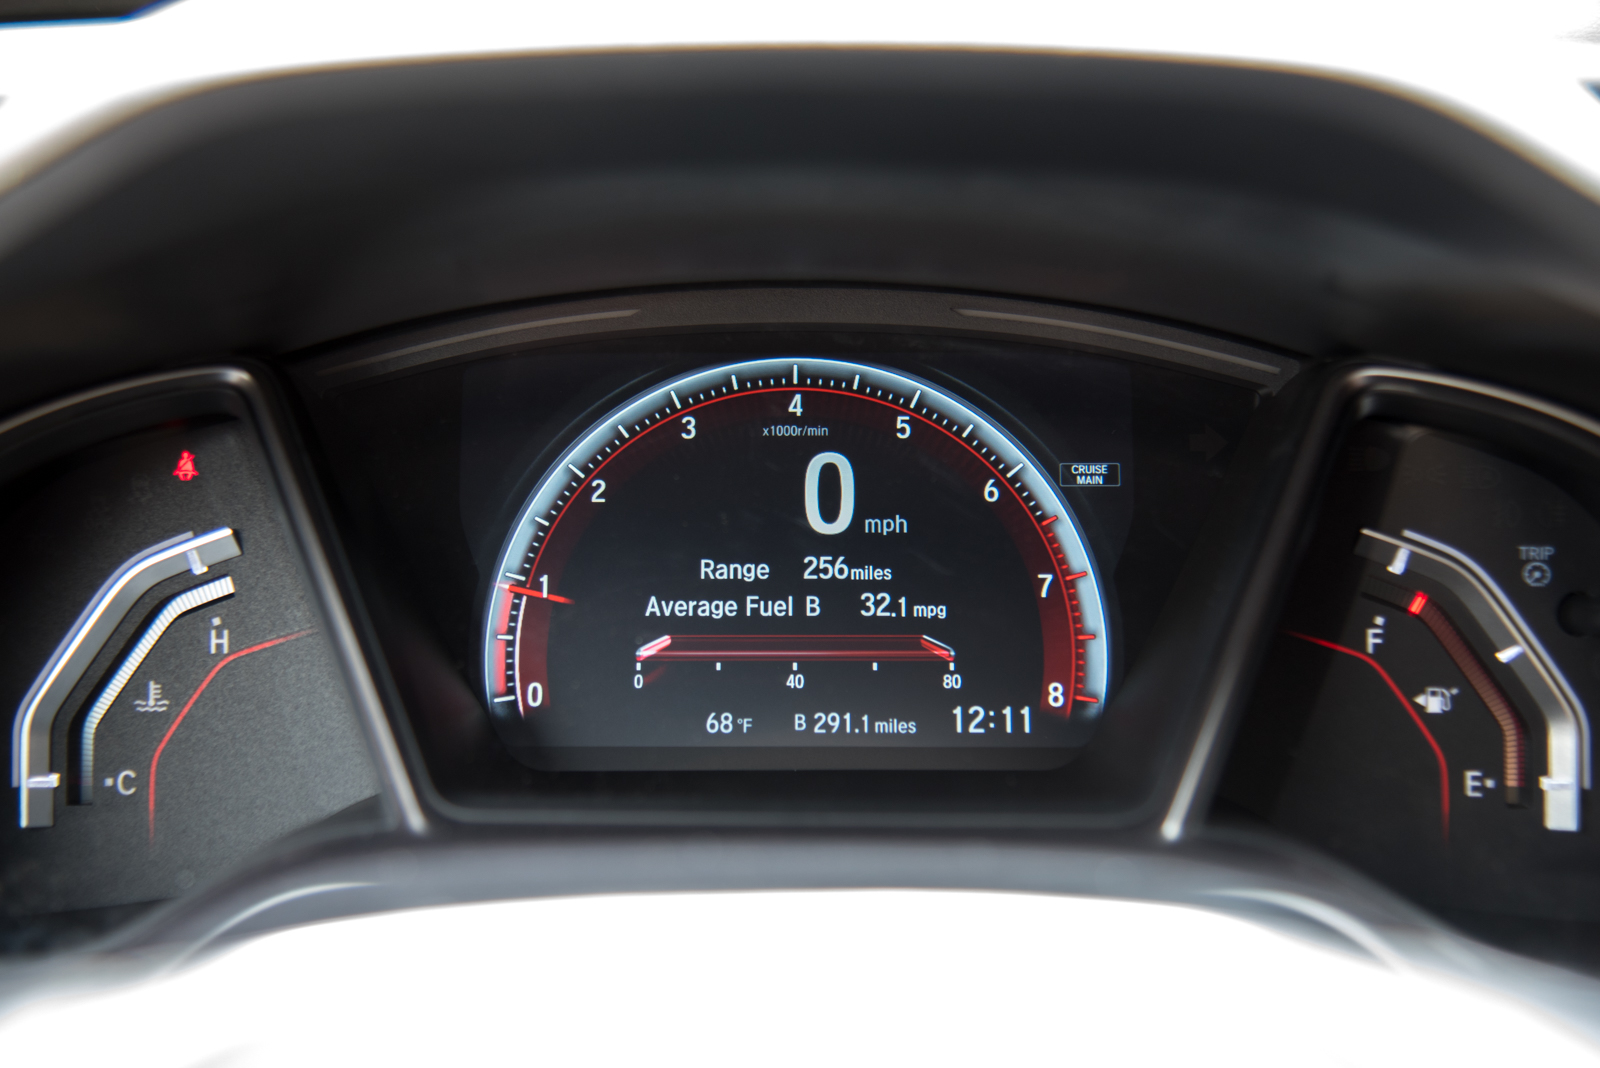 2017 Honda Civic Si Gauges